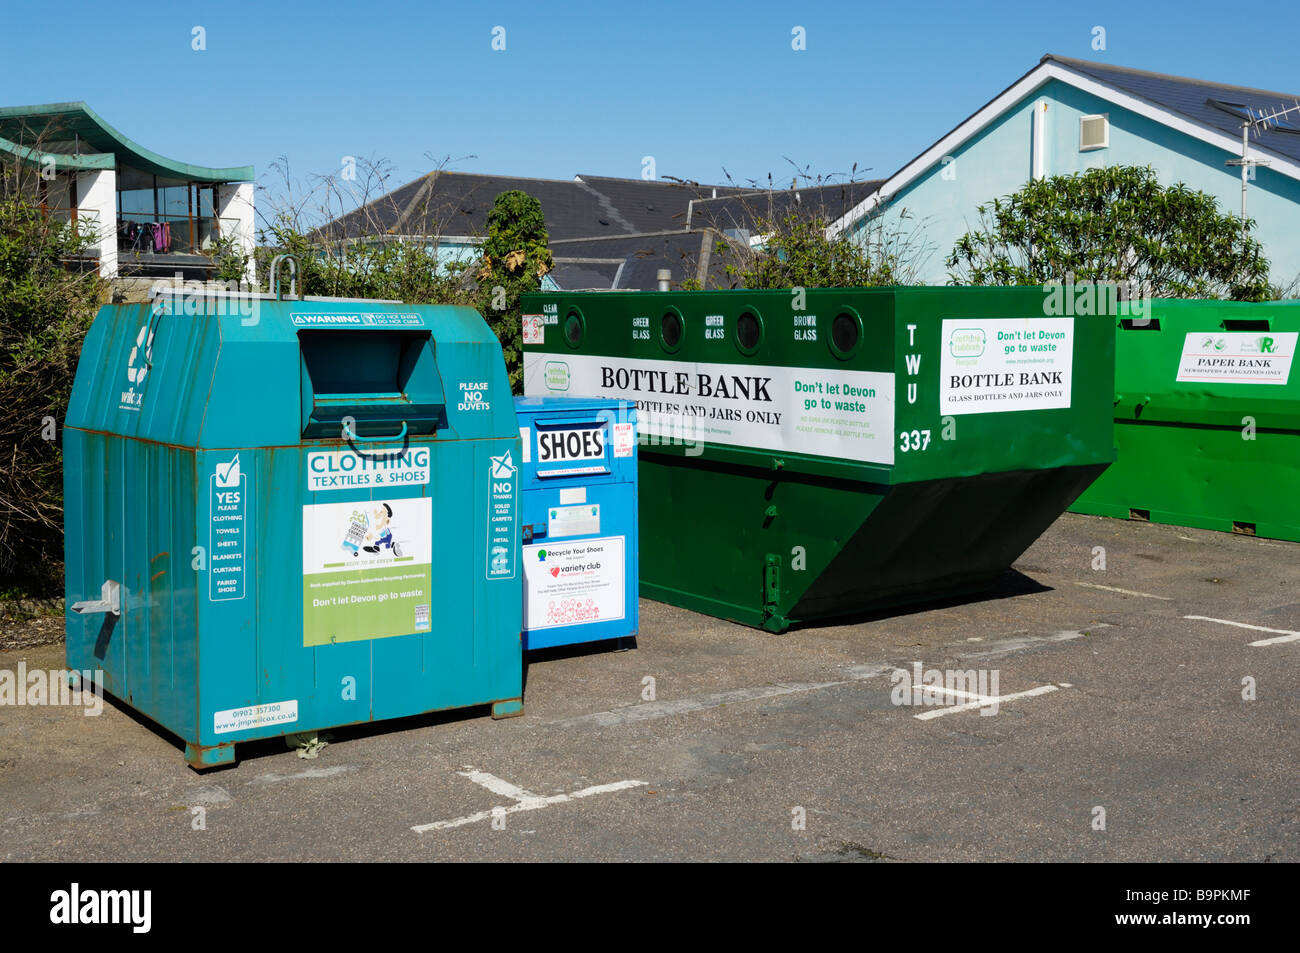 Recycling Banks in a car park in North Devon - Stock Image